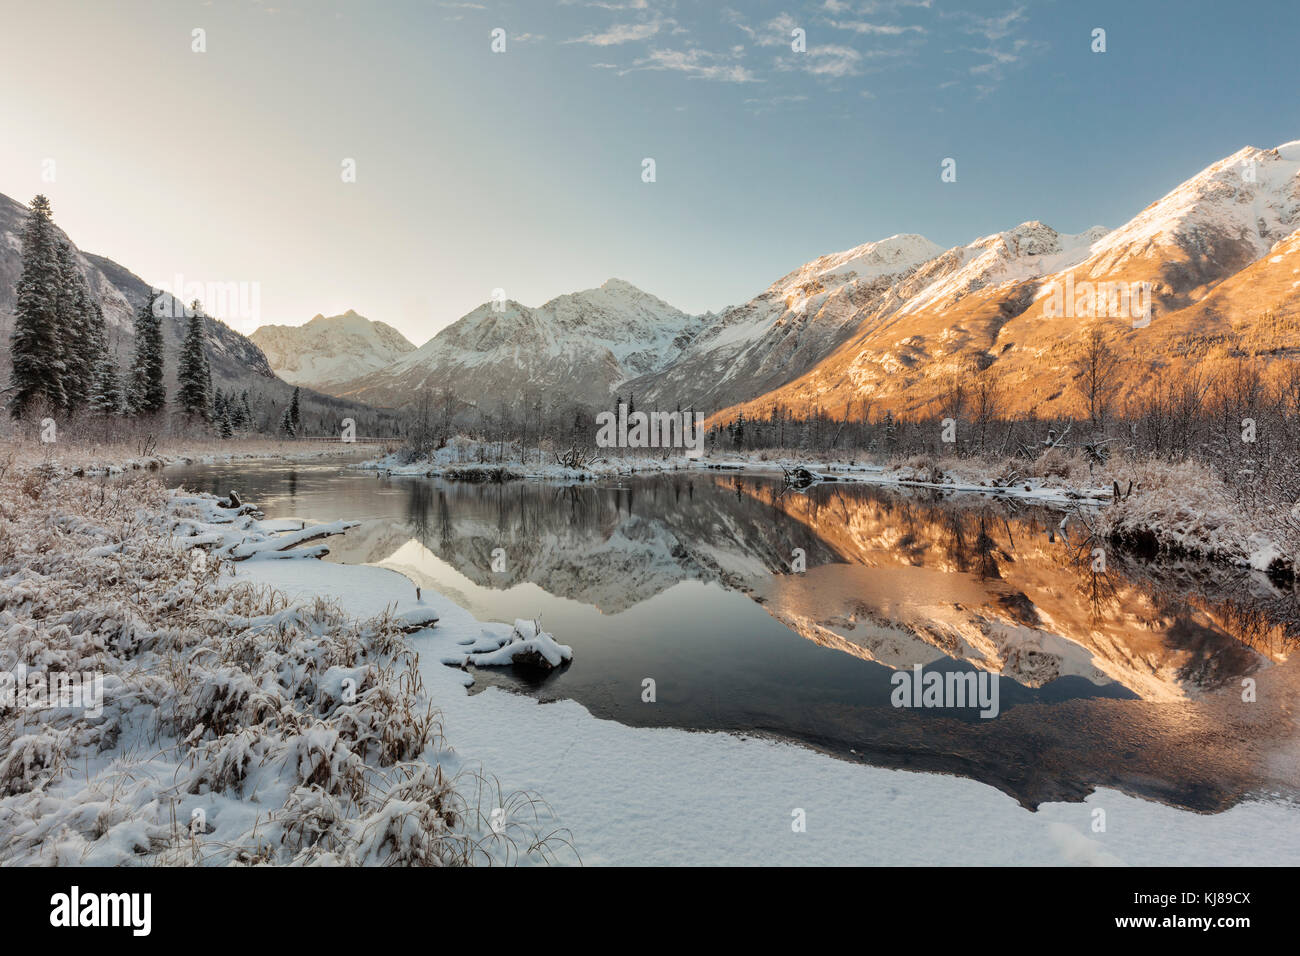 Dawn light illuminates the season's first snow as it blankets Eagle River Valley and the Chugach Mountains in - Stock Image